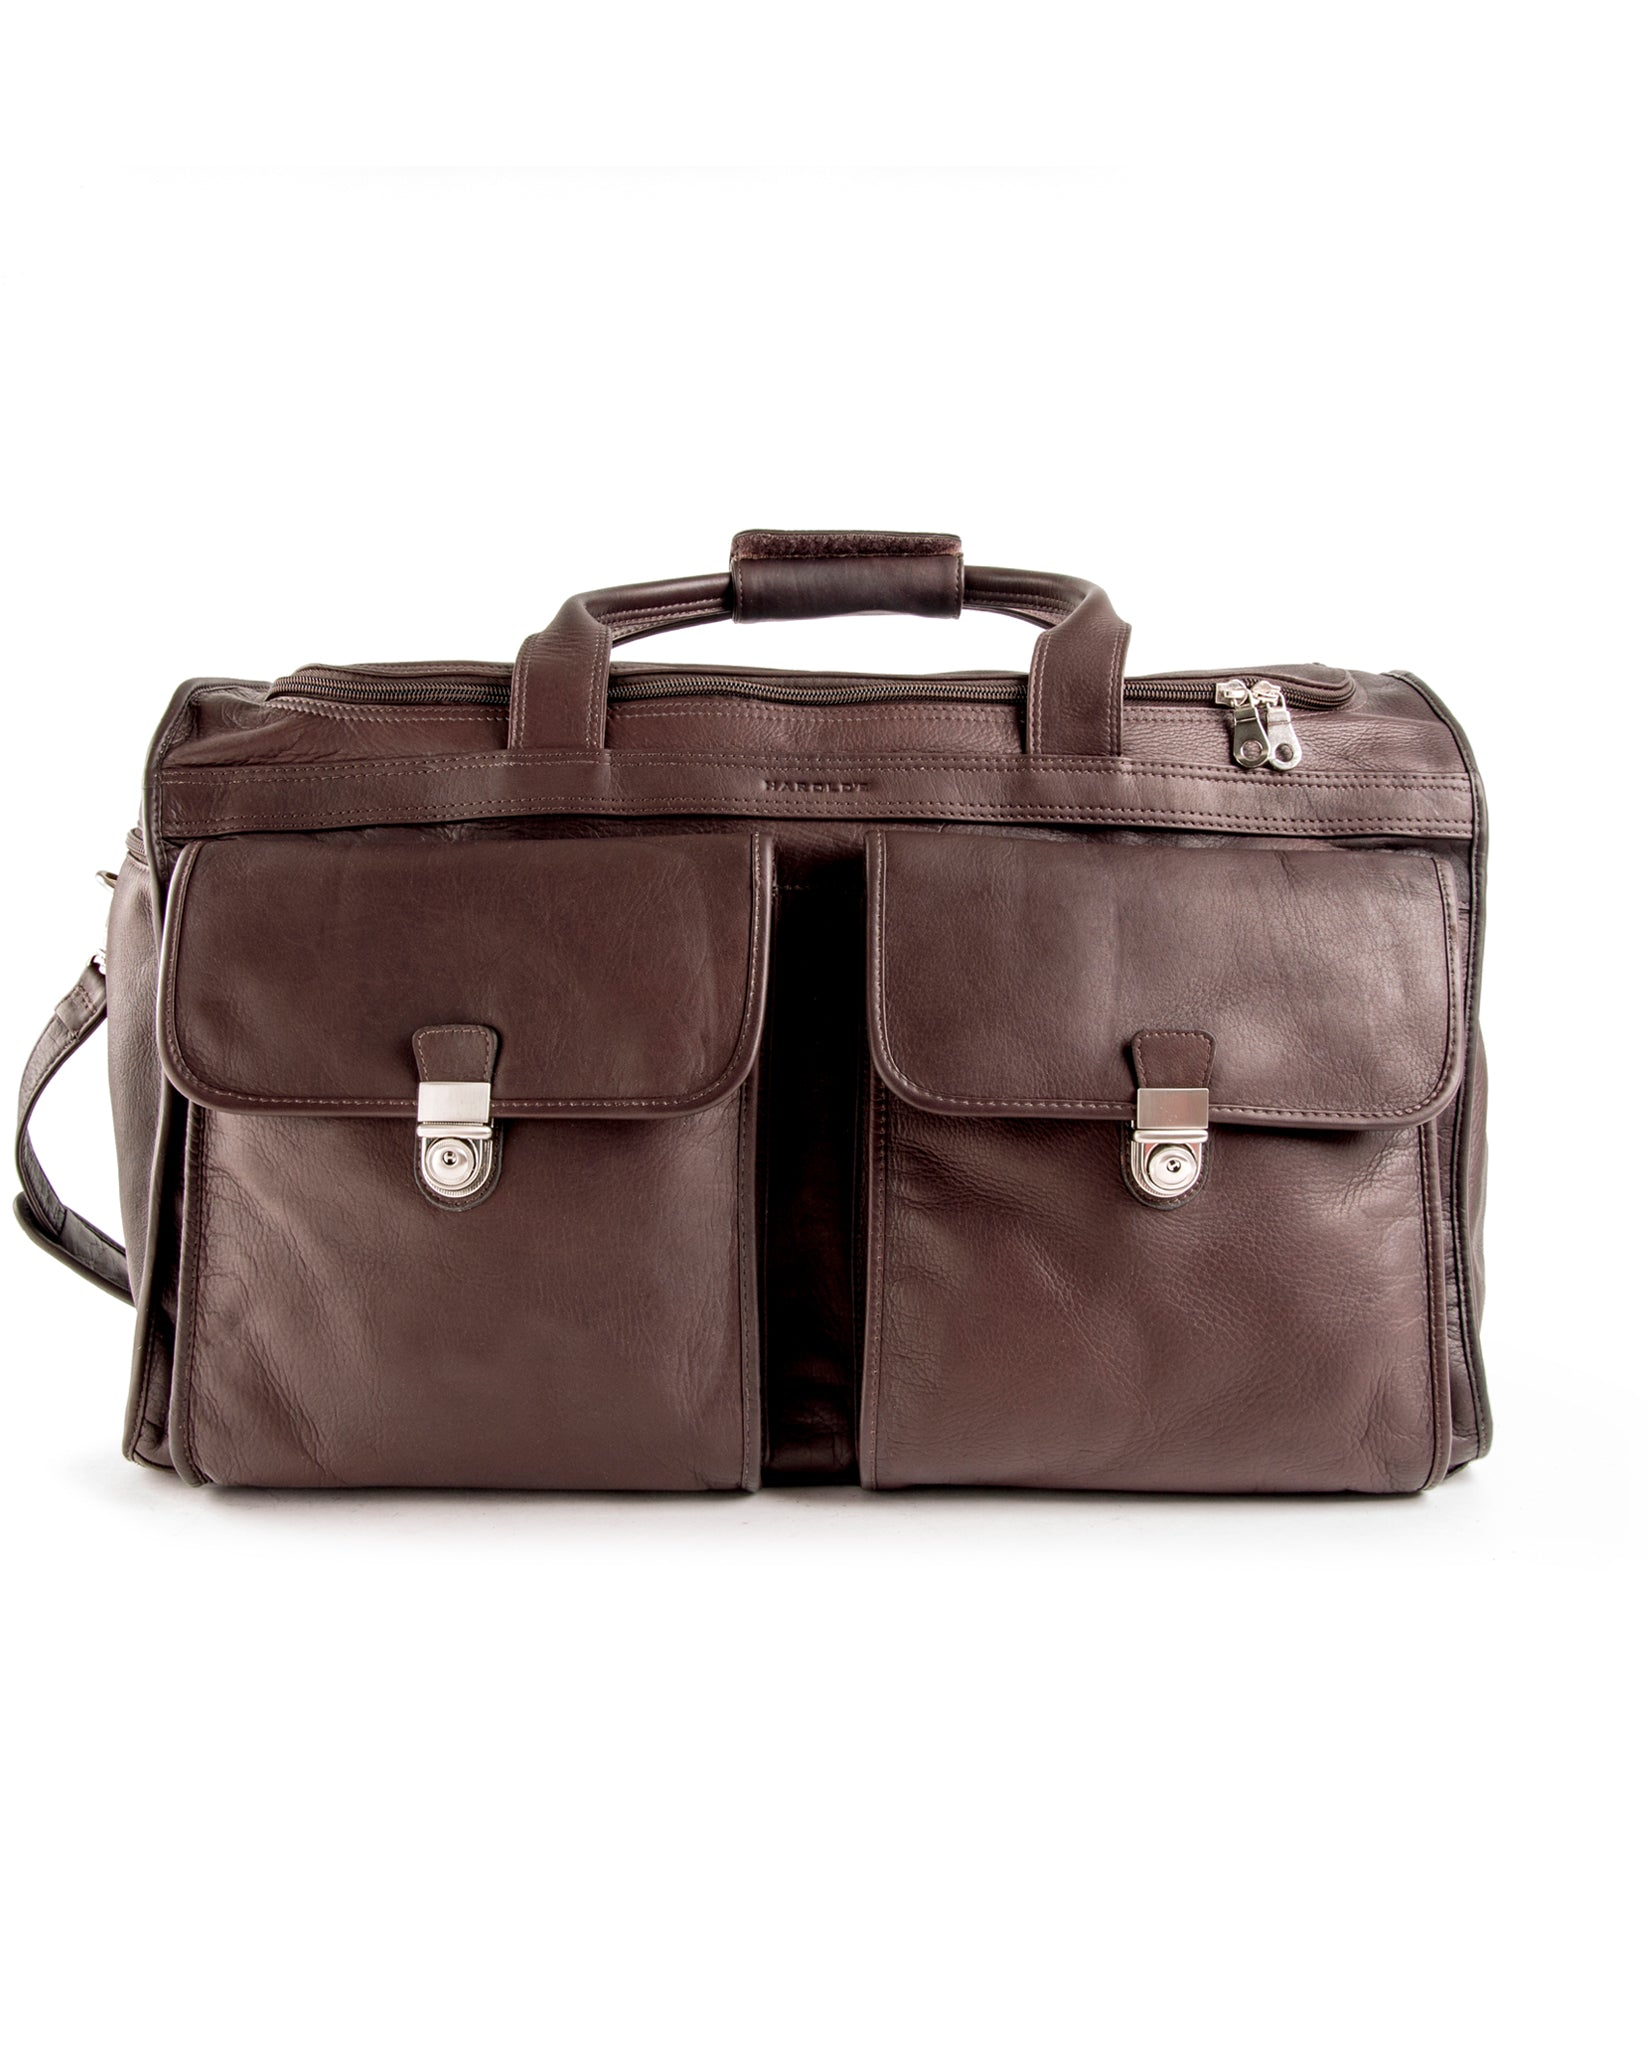 Country Travelbag medium